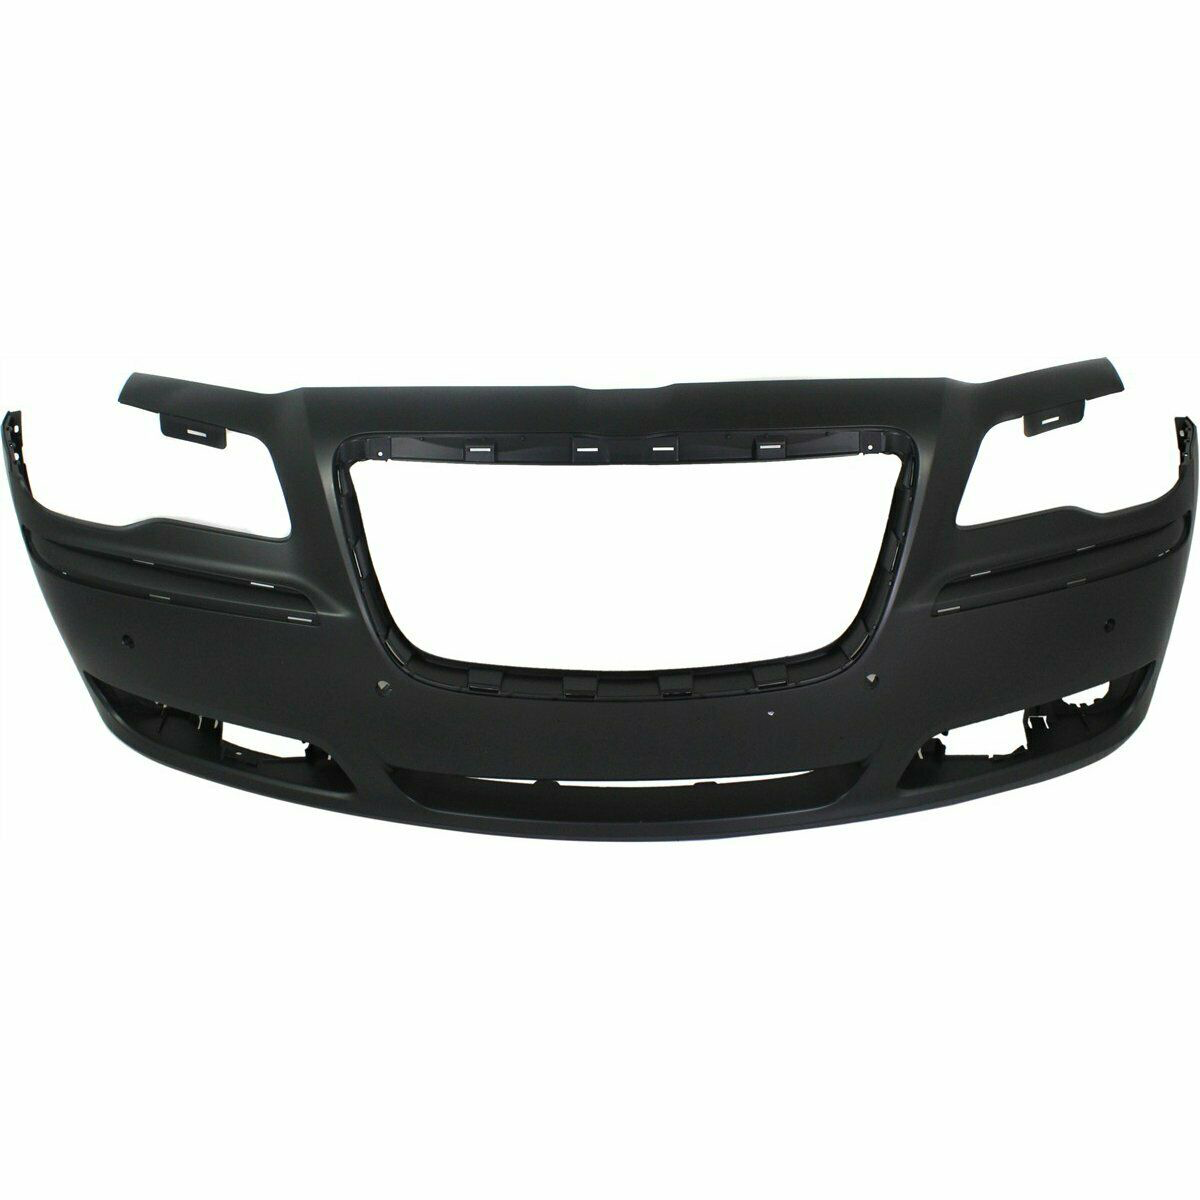 2011-2012 Chrysler 300 w/Snsr Holes Front Bumper Painted to Match